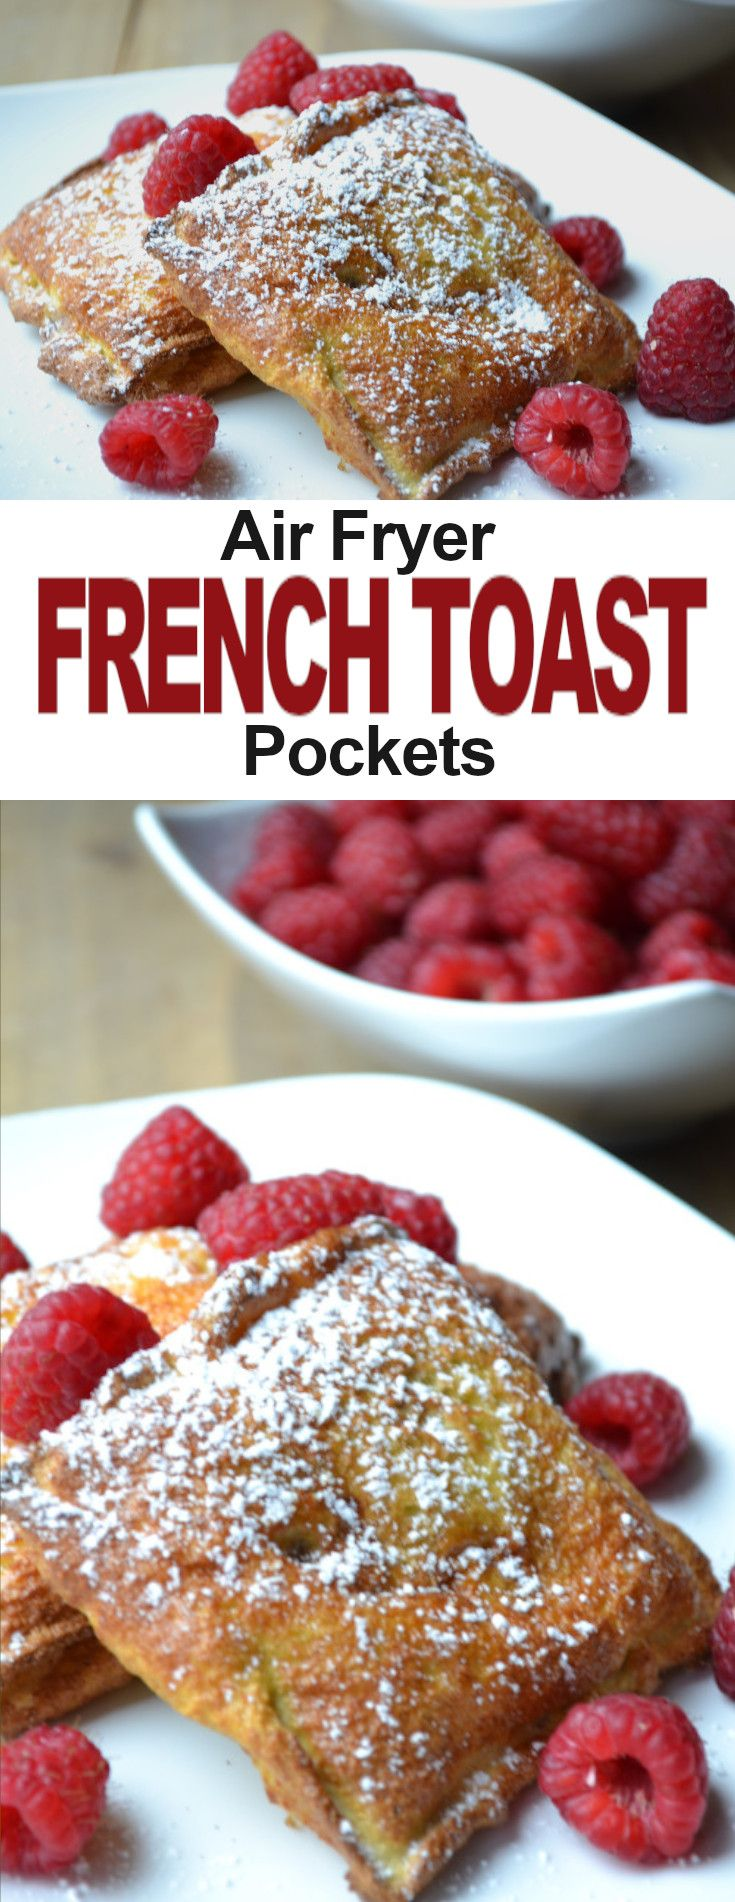 Air Fryer Raspberry French Toast Pockets #airfryerrecipes